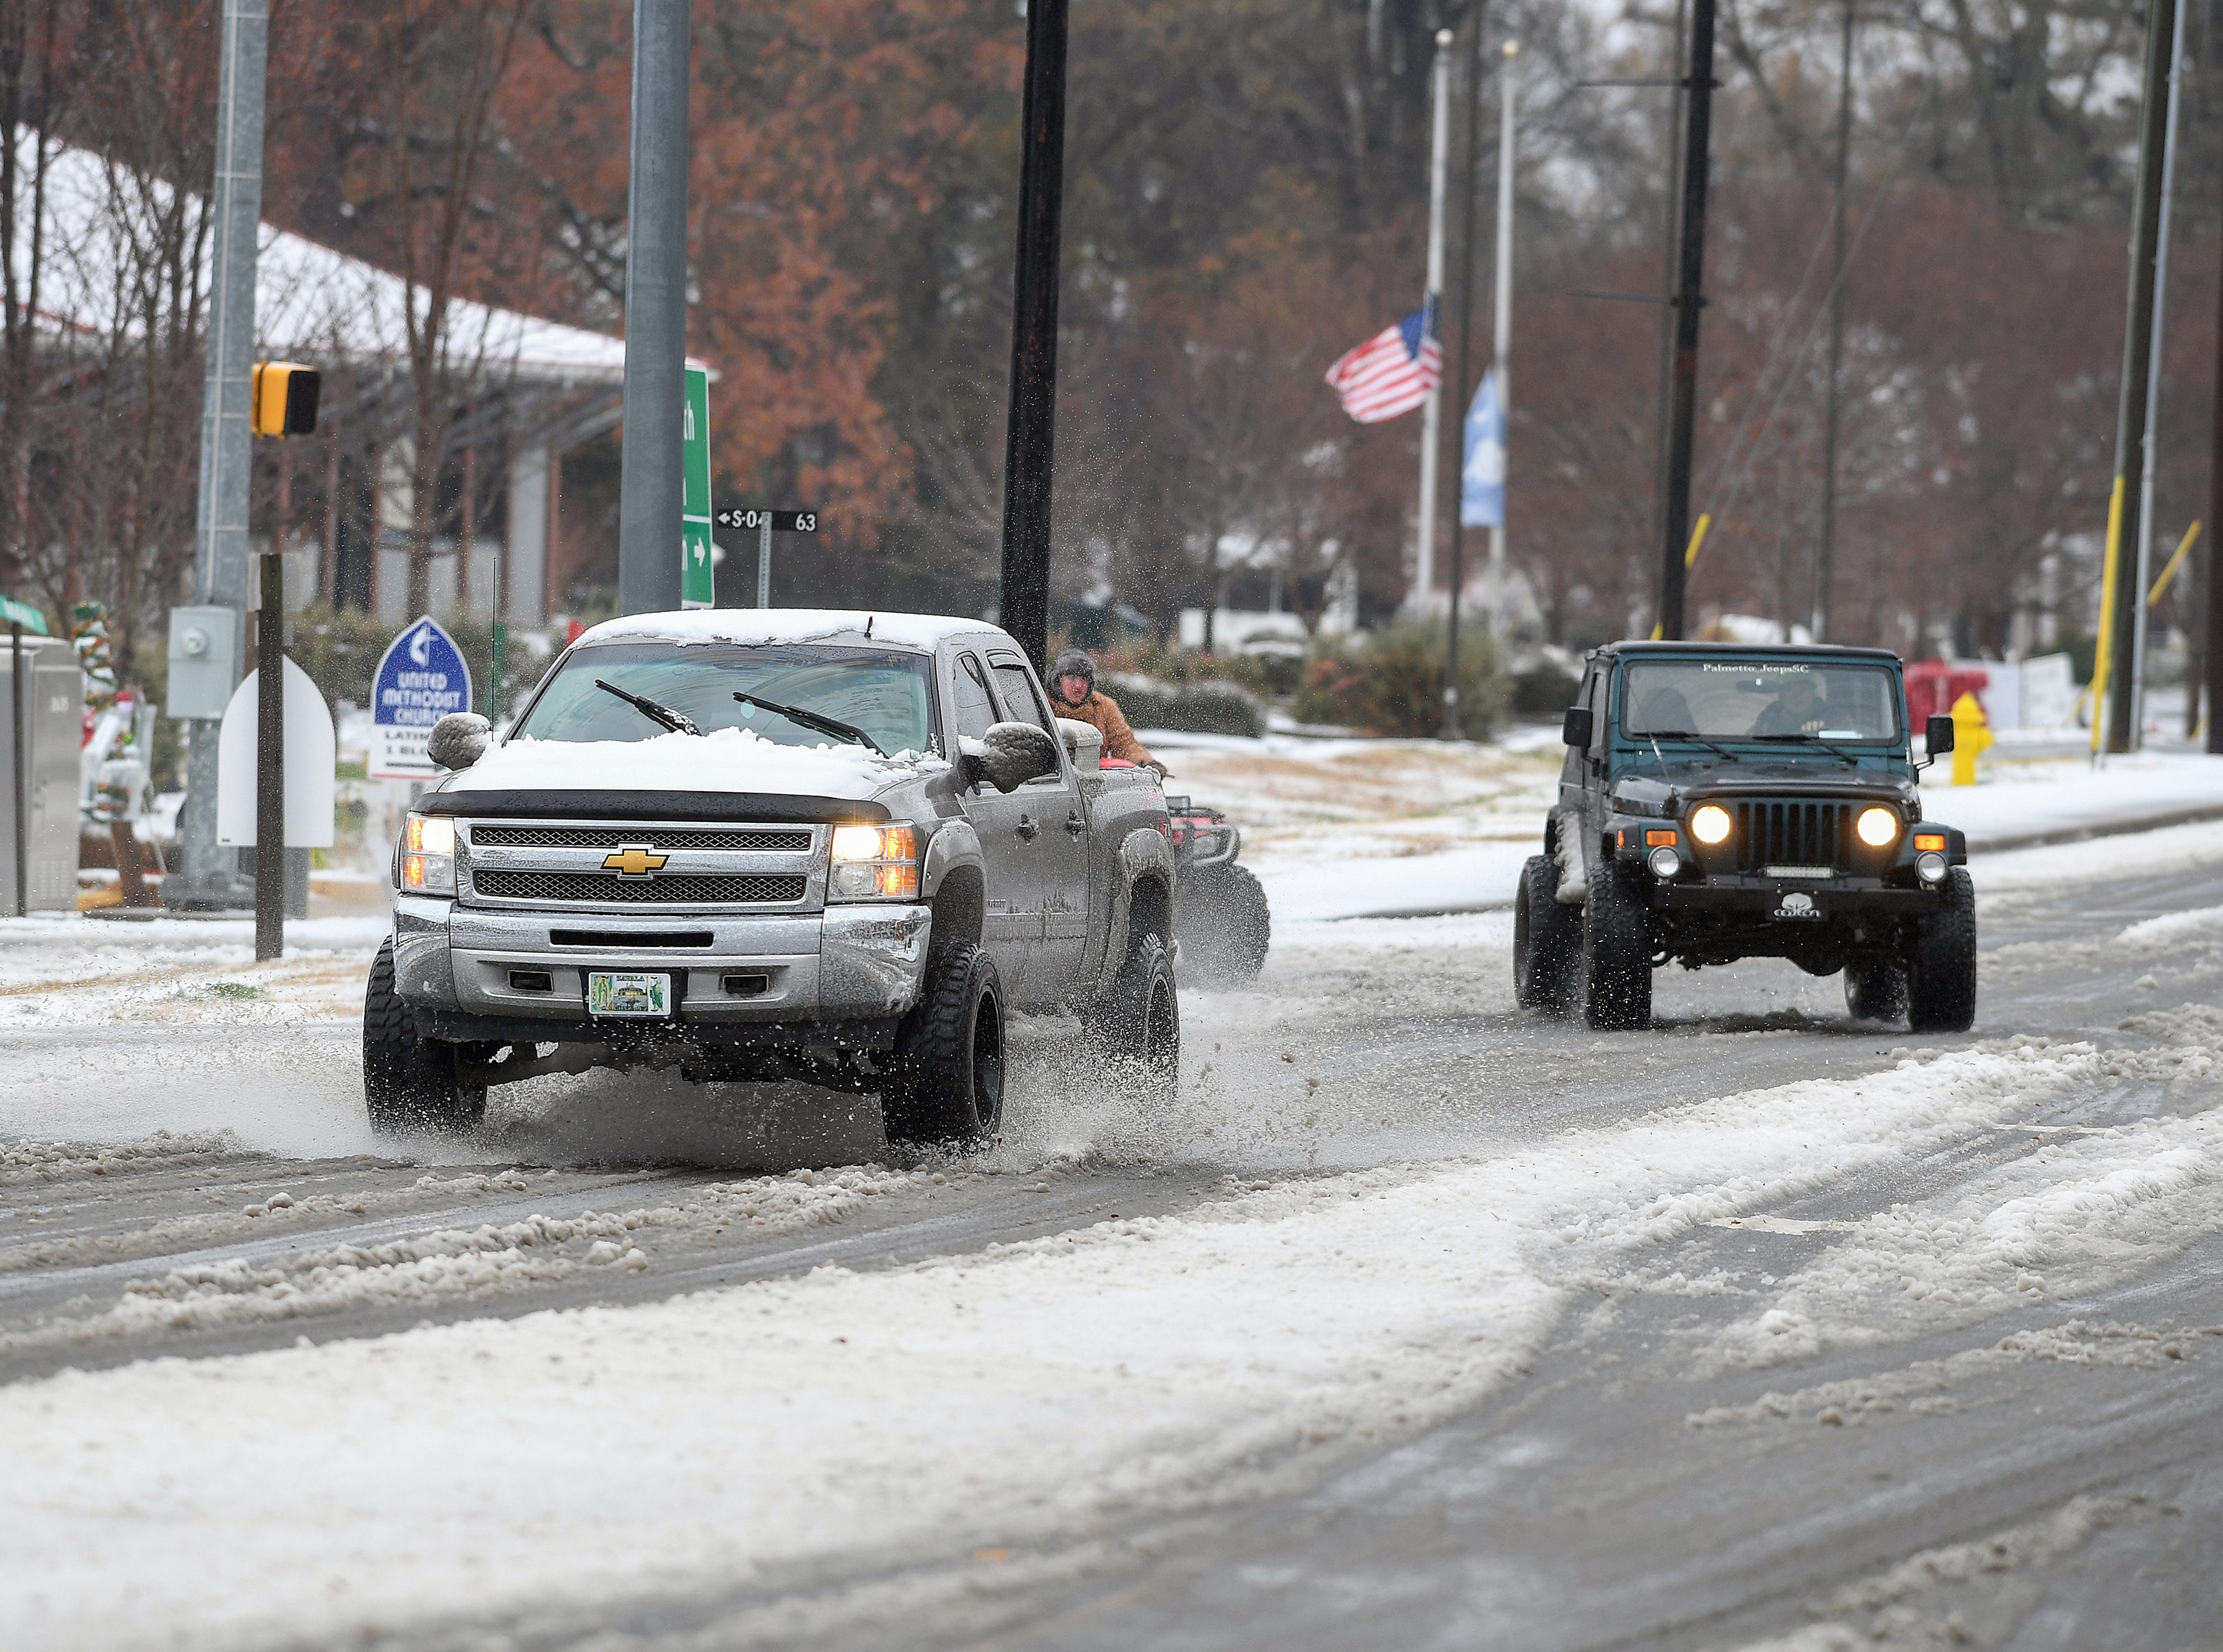 Main Street in downtown Belton after a layer of sleet fell early Sunday December 9, 2018.